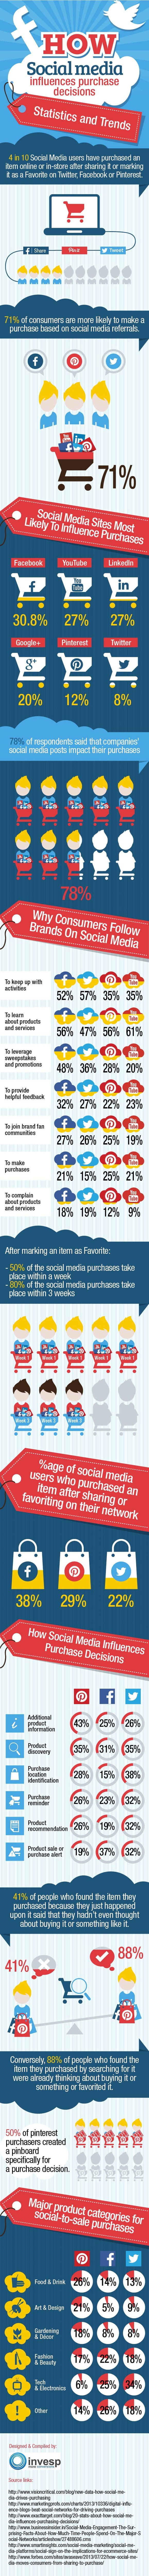 social-media-purchase-decisions.jpg (580×10016):  Internet Site, Infographic Socialmedia, Media Influenc, Digital Marketing,  Website, Socialmedia Marketing, Social Media, Influenc Purcha, Tech Gadgets